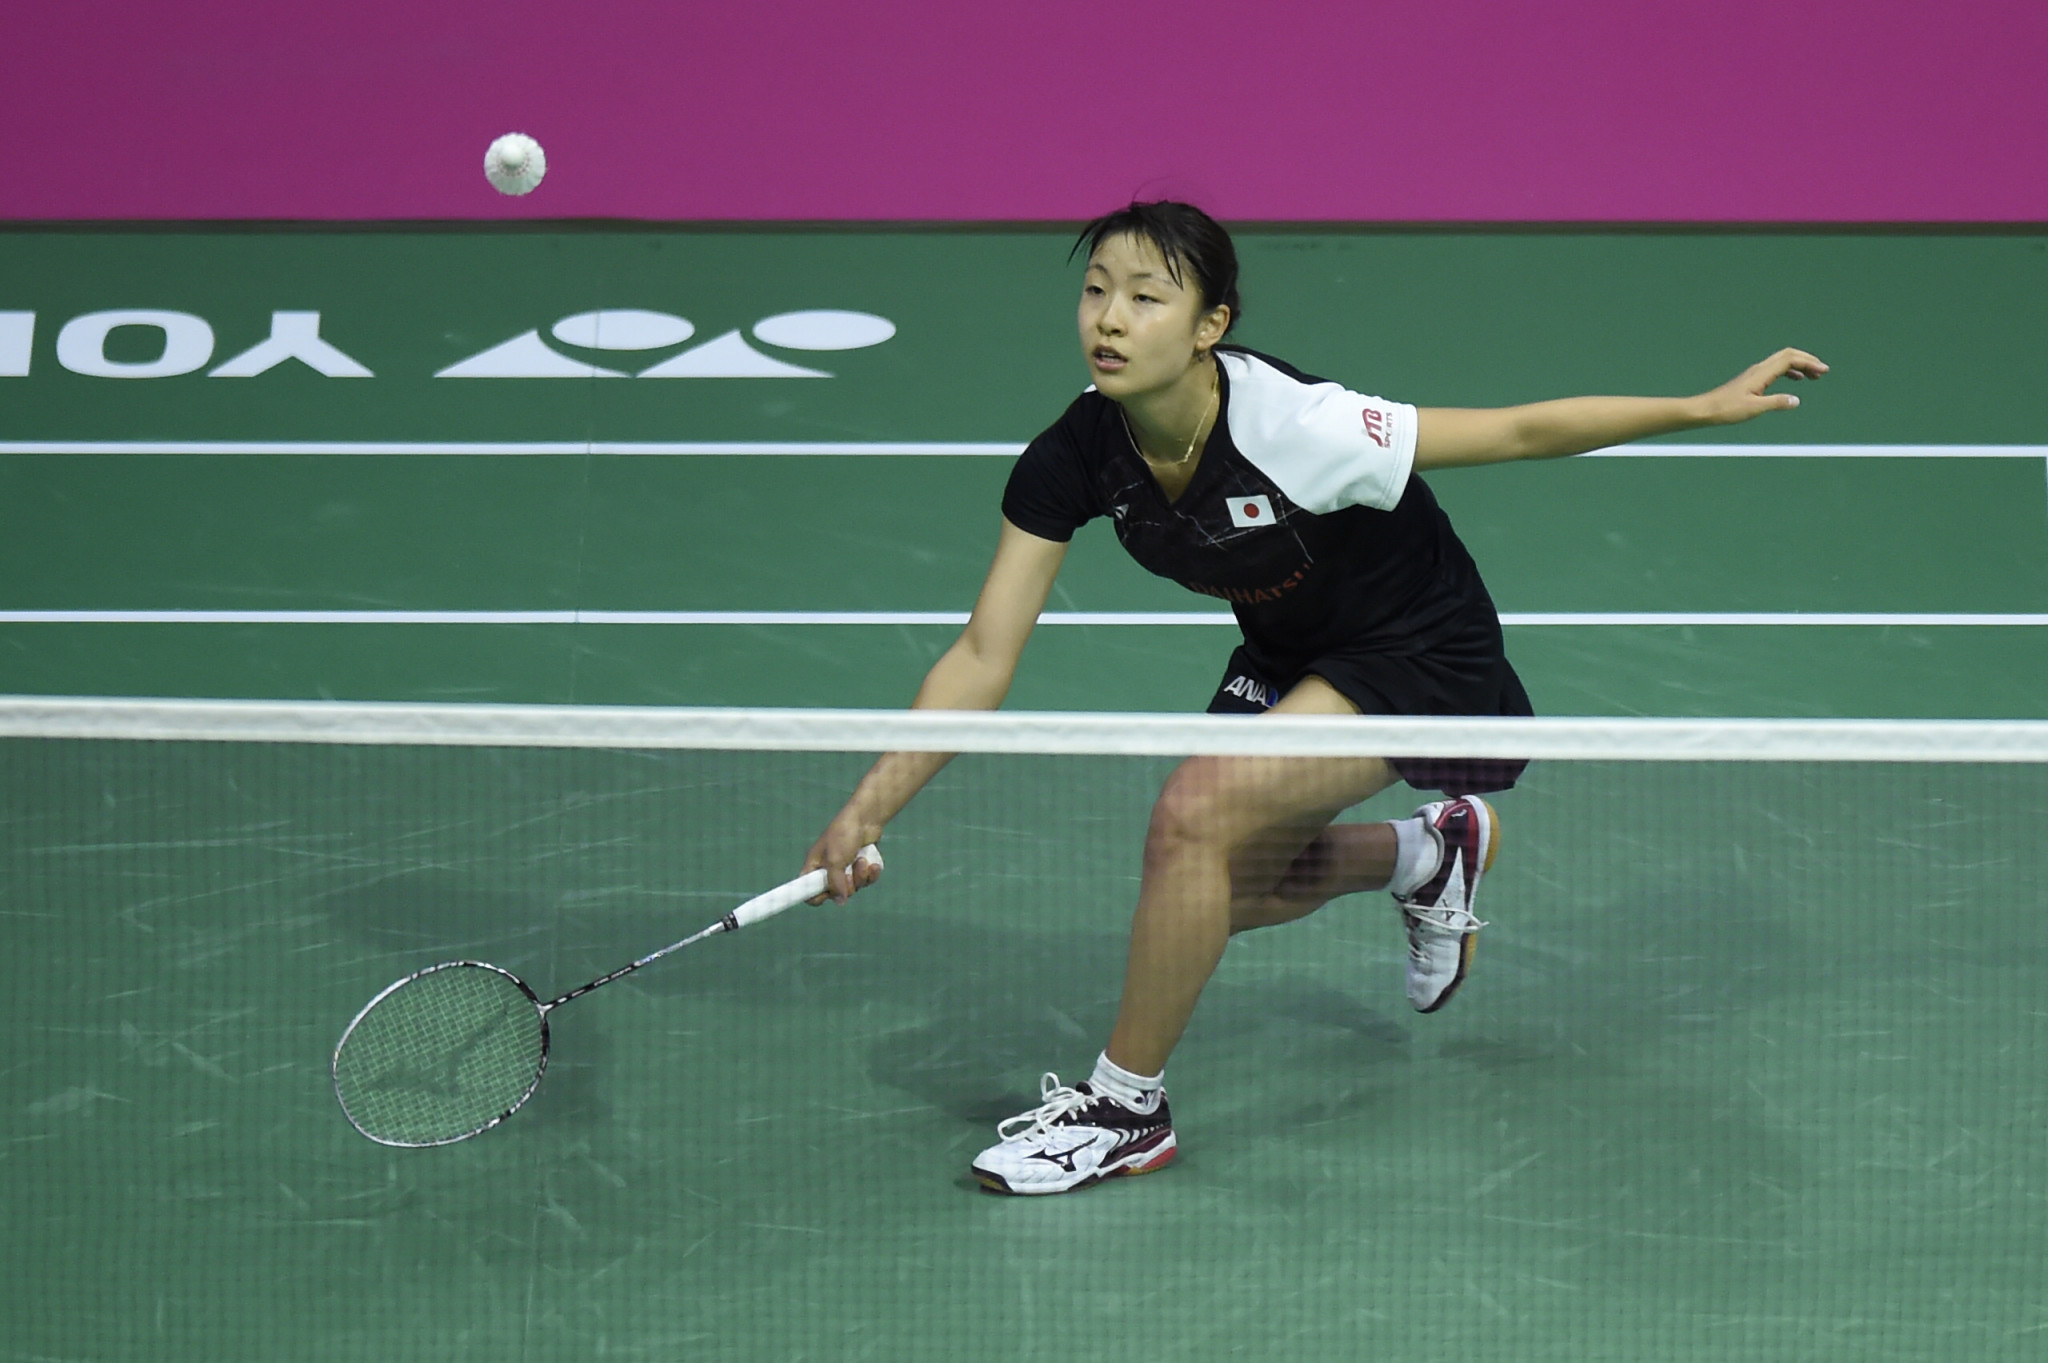 World champion Okuhara among players to progress at BWF Korea Open